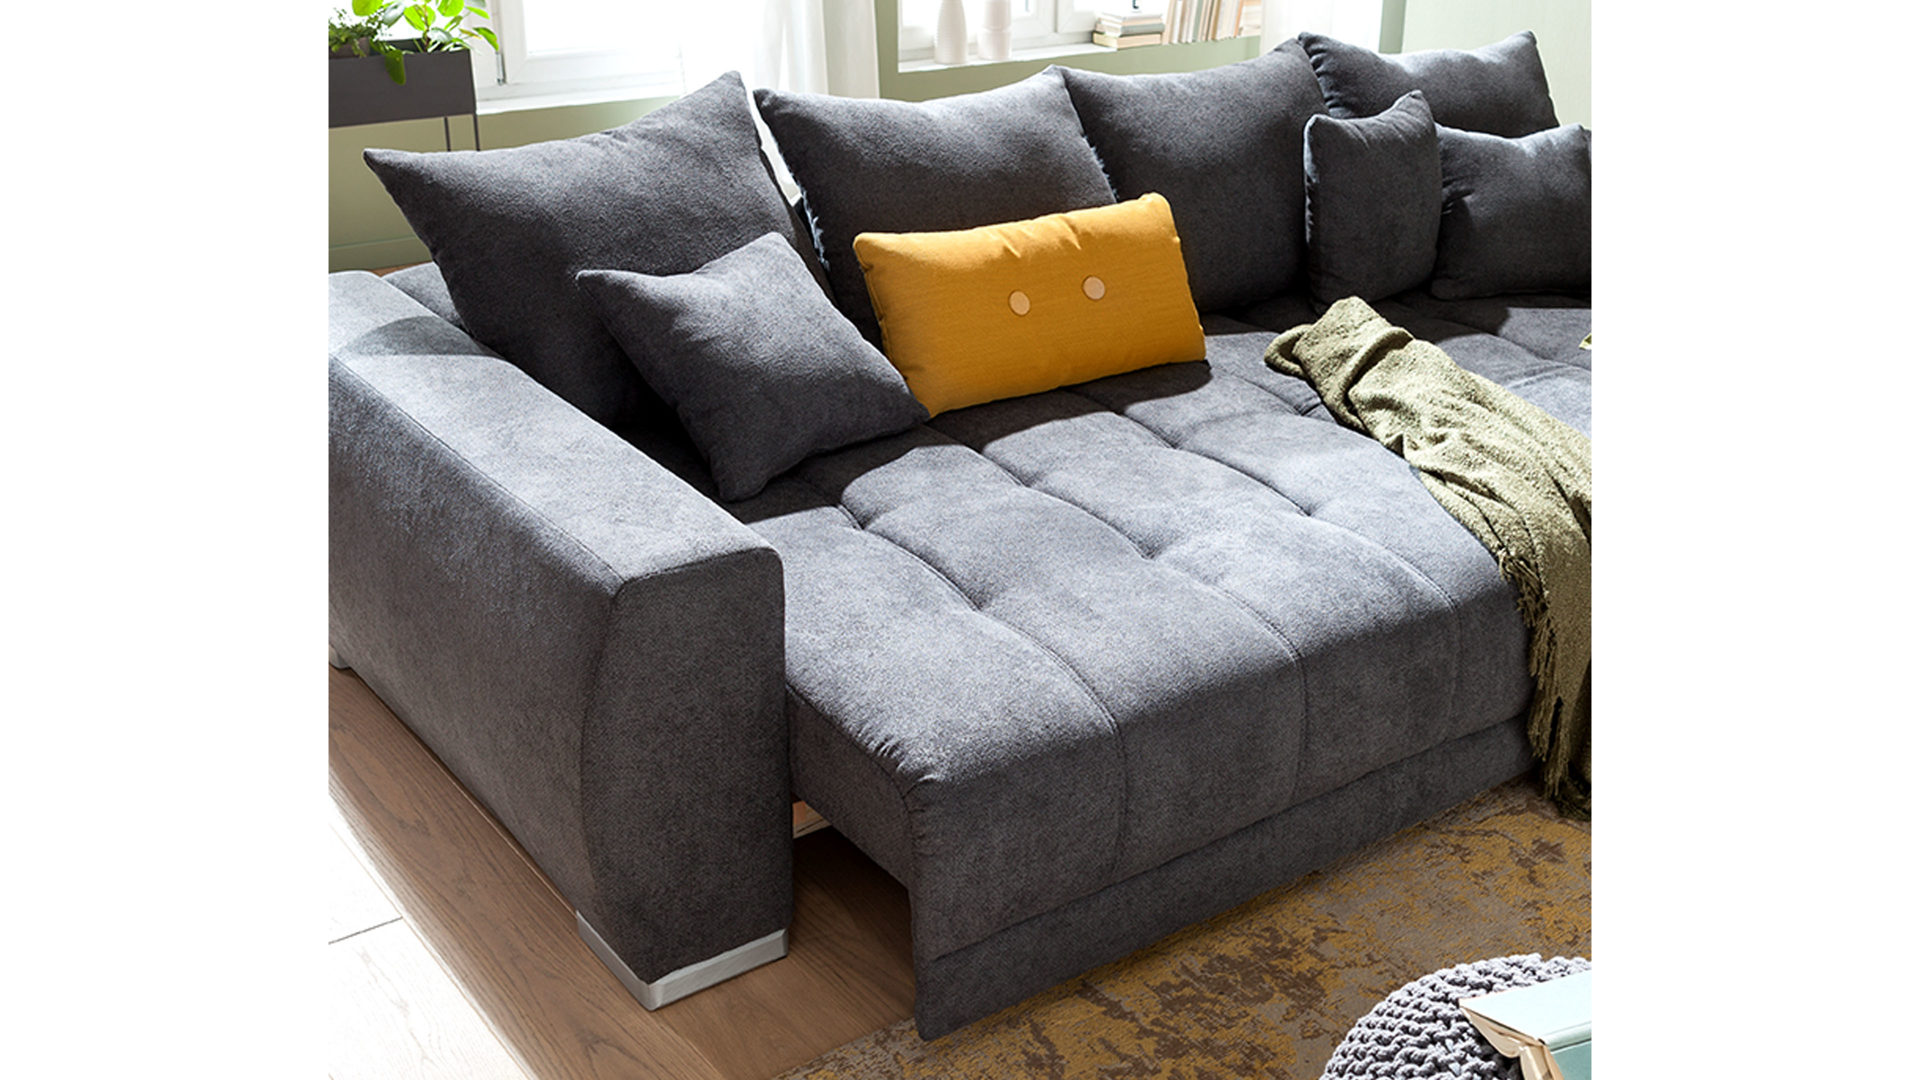 Möbel Eilers Apen Möbel A Z Sofas Couches Kawoo Kawoo Eckcouch